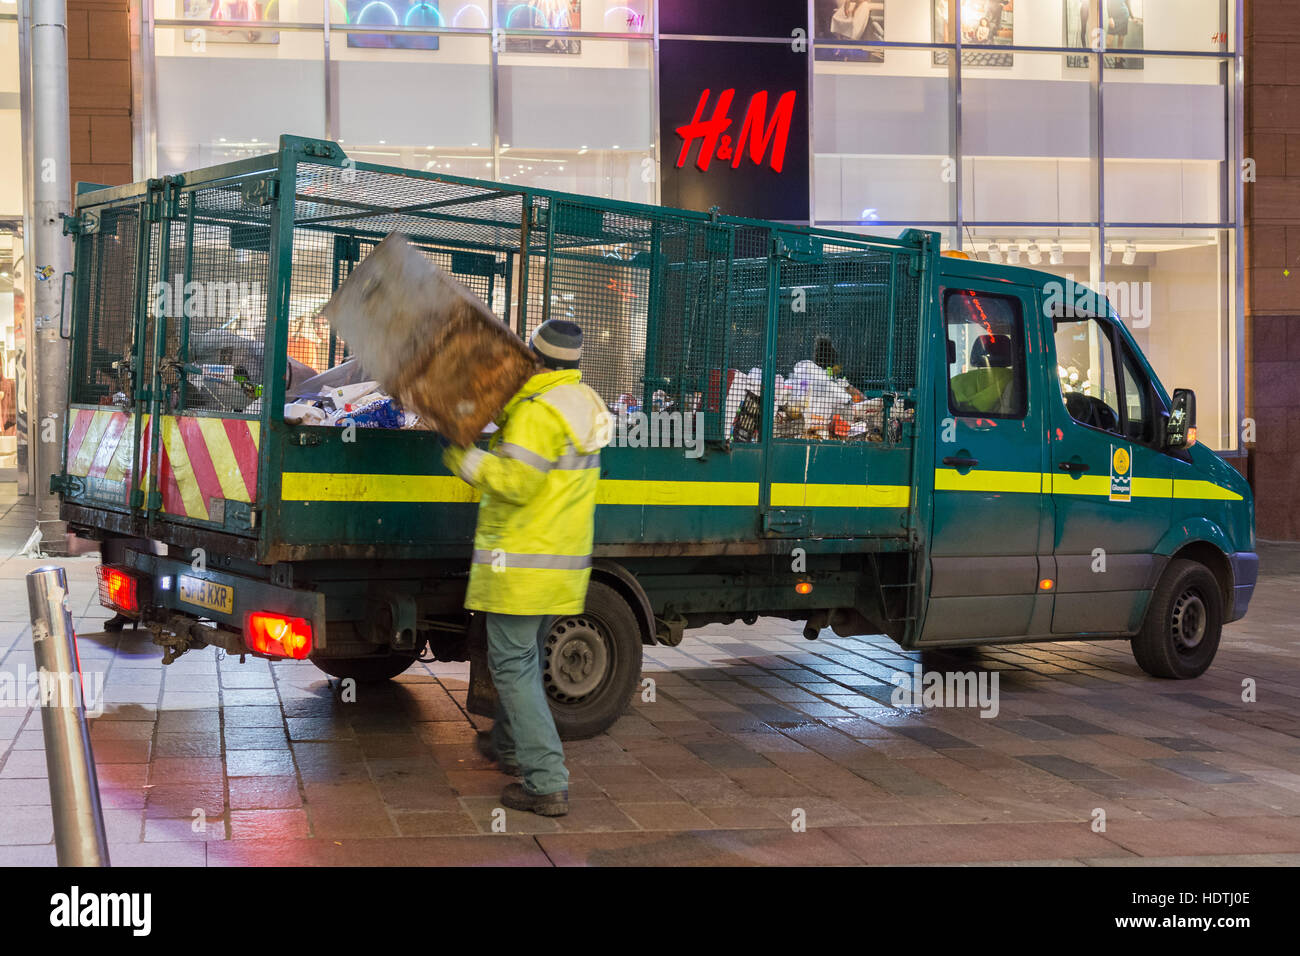 council worker emptying litter bins in Glasgow city centre at night - Stock Image